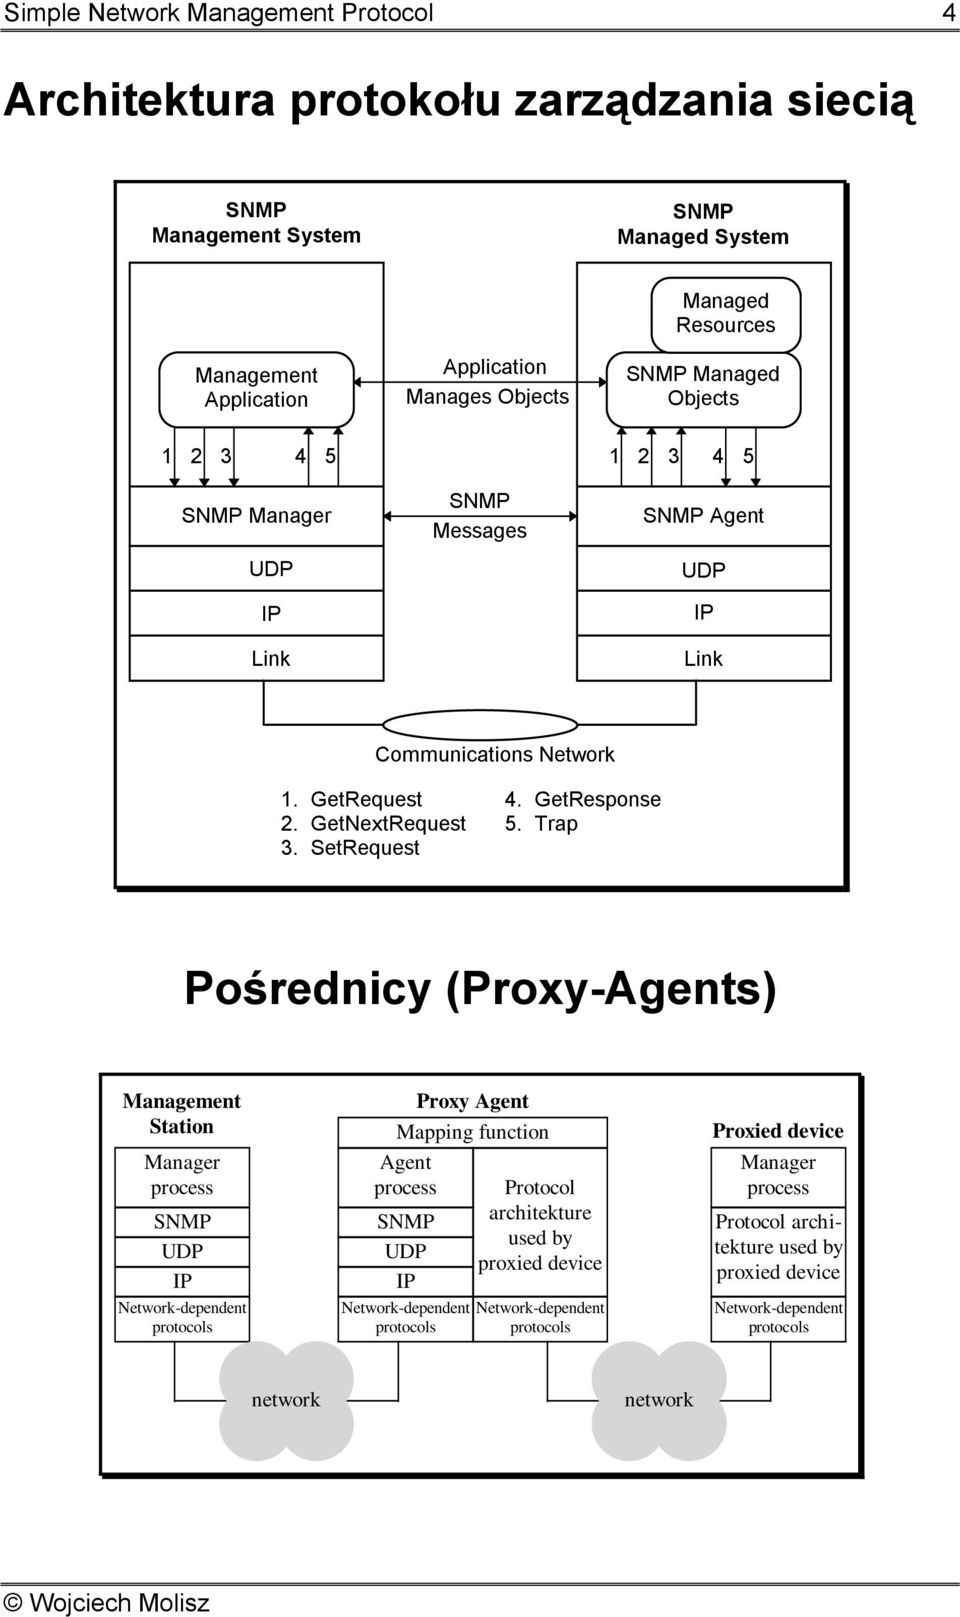 Trap Pośrednicy (Proxy-Agents) Management Station Manager process Network-dependent protocols Proxy Agent Mapping function Agent process Network-dependent protocols